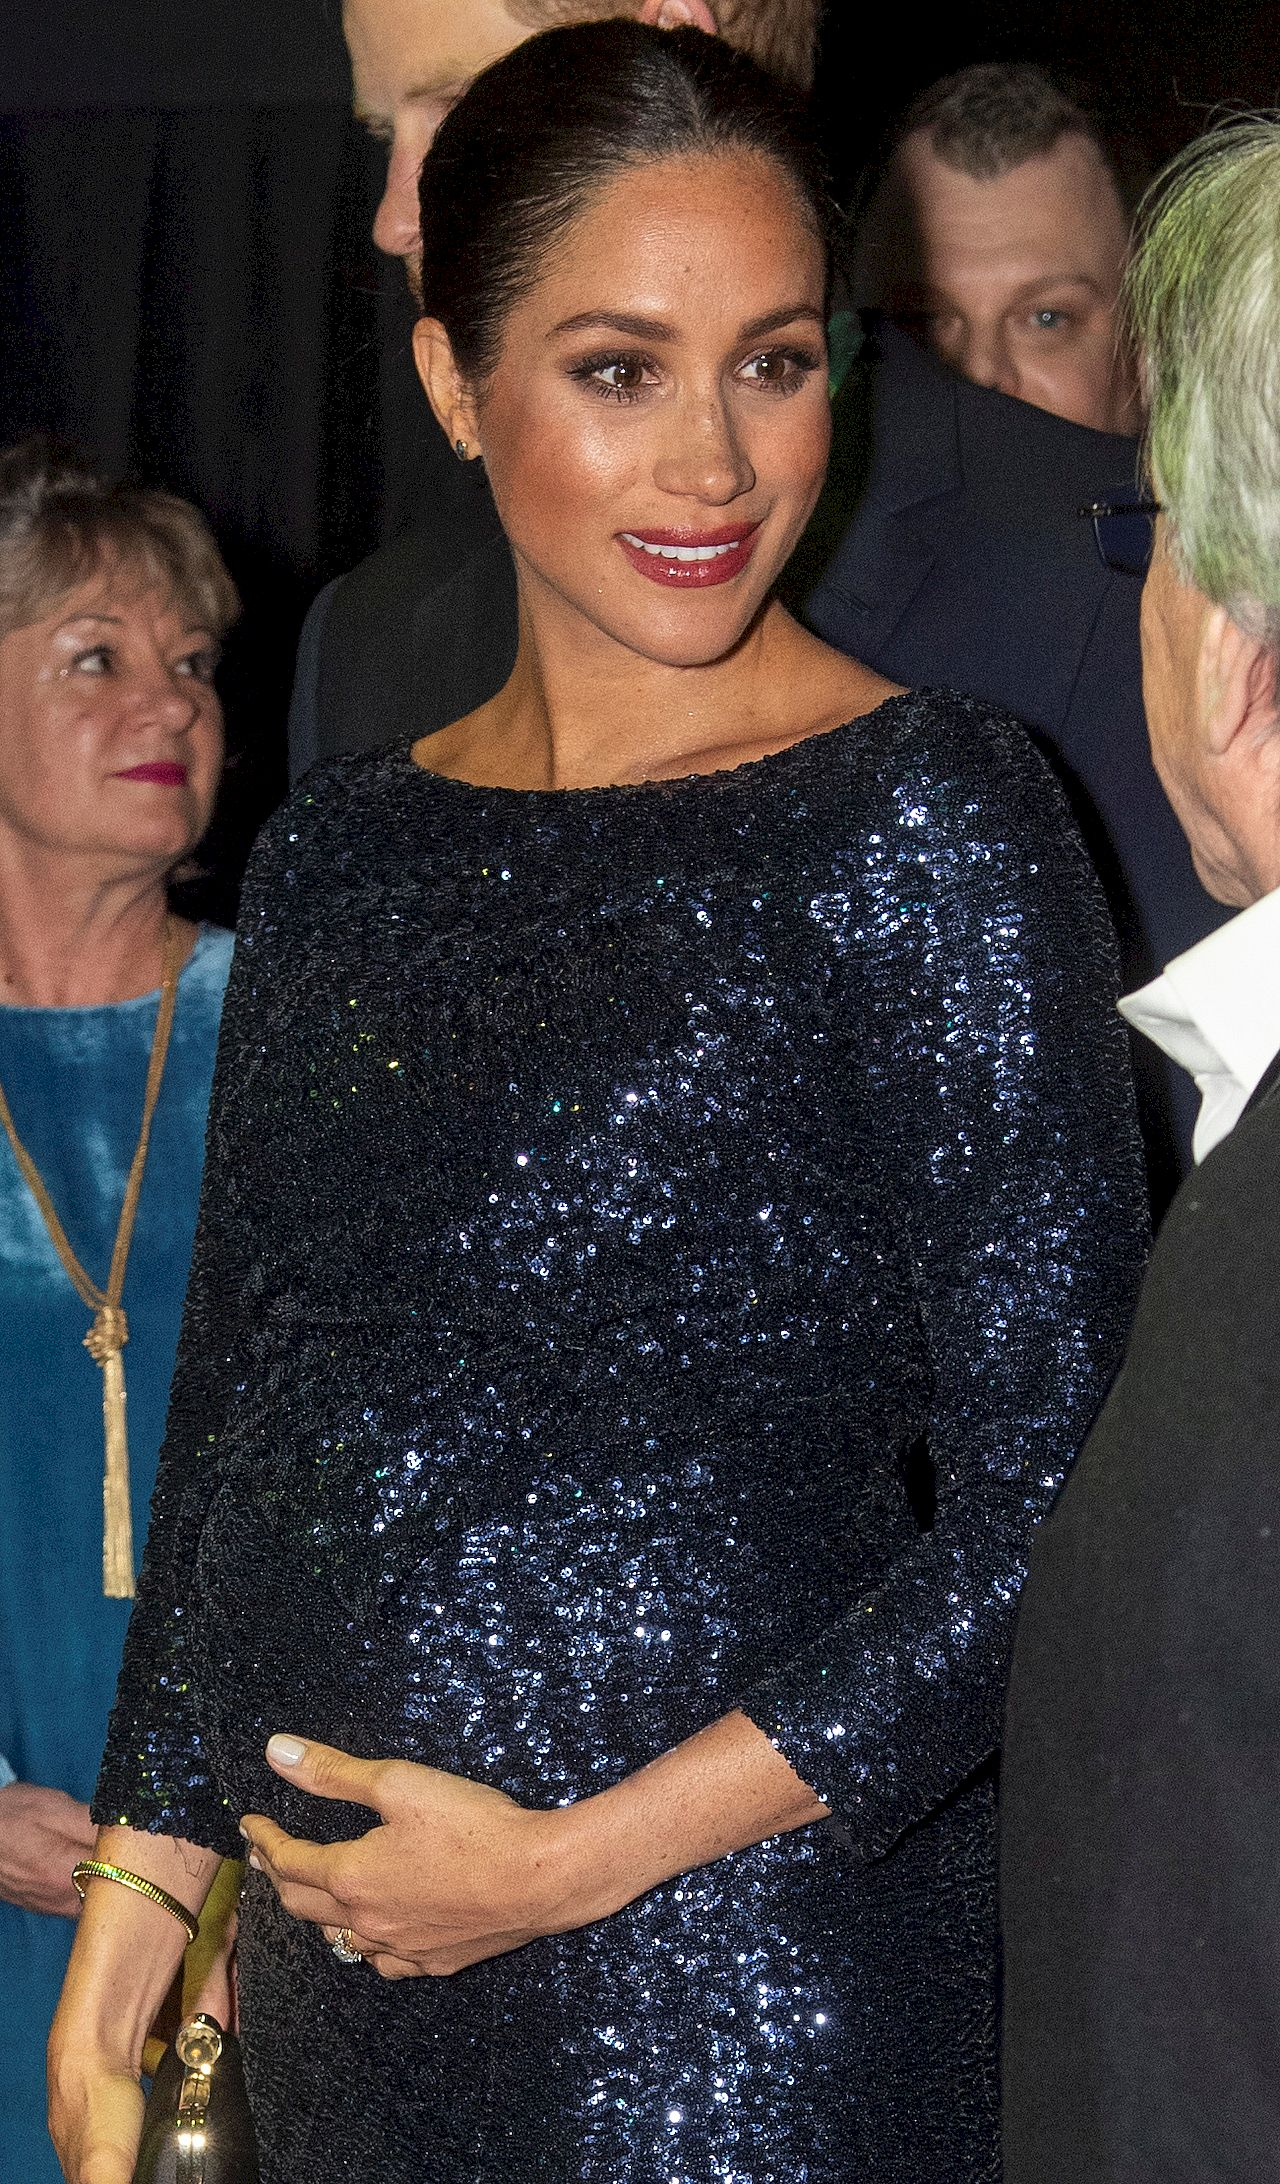 Britain's Prince Harry and Meghan, Duchess of Sussex attend the premiere of Cirque du Soleil's 'Totem' at the Royal Albert Hall in London